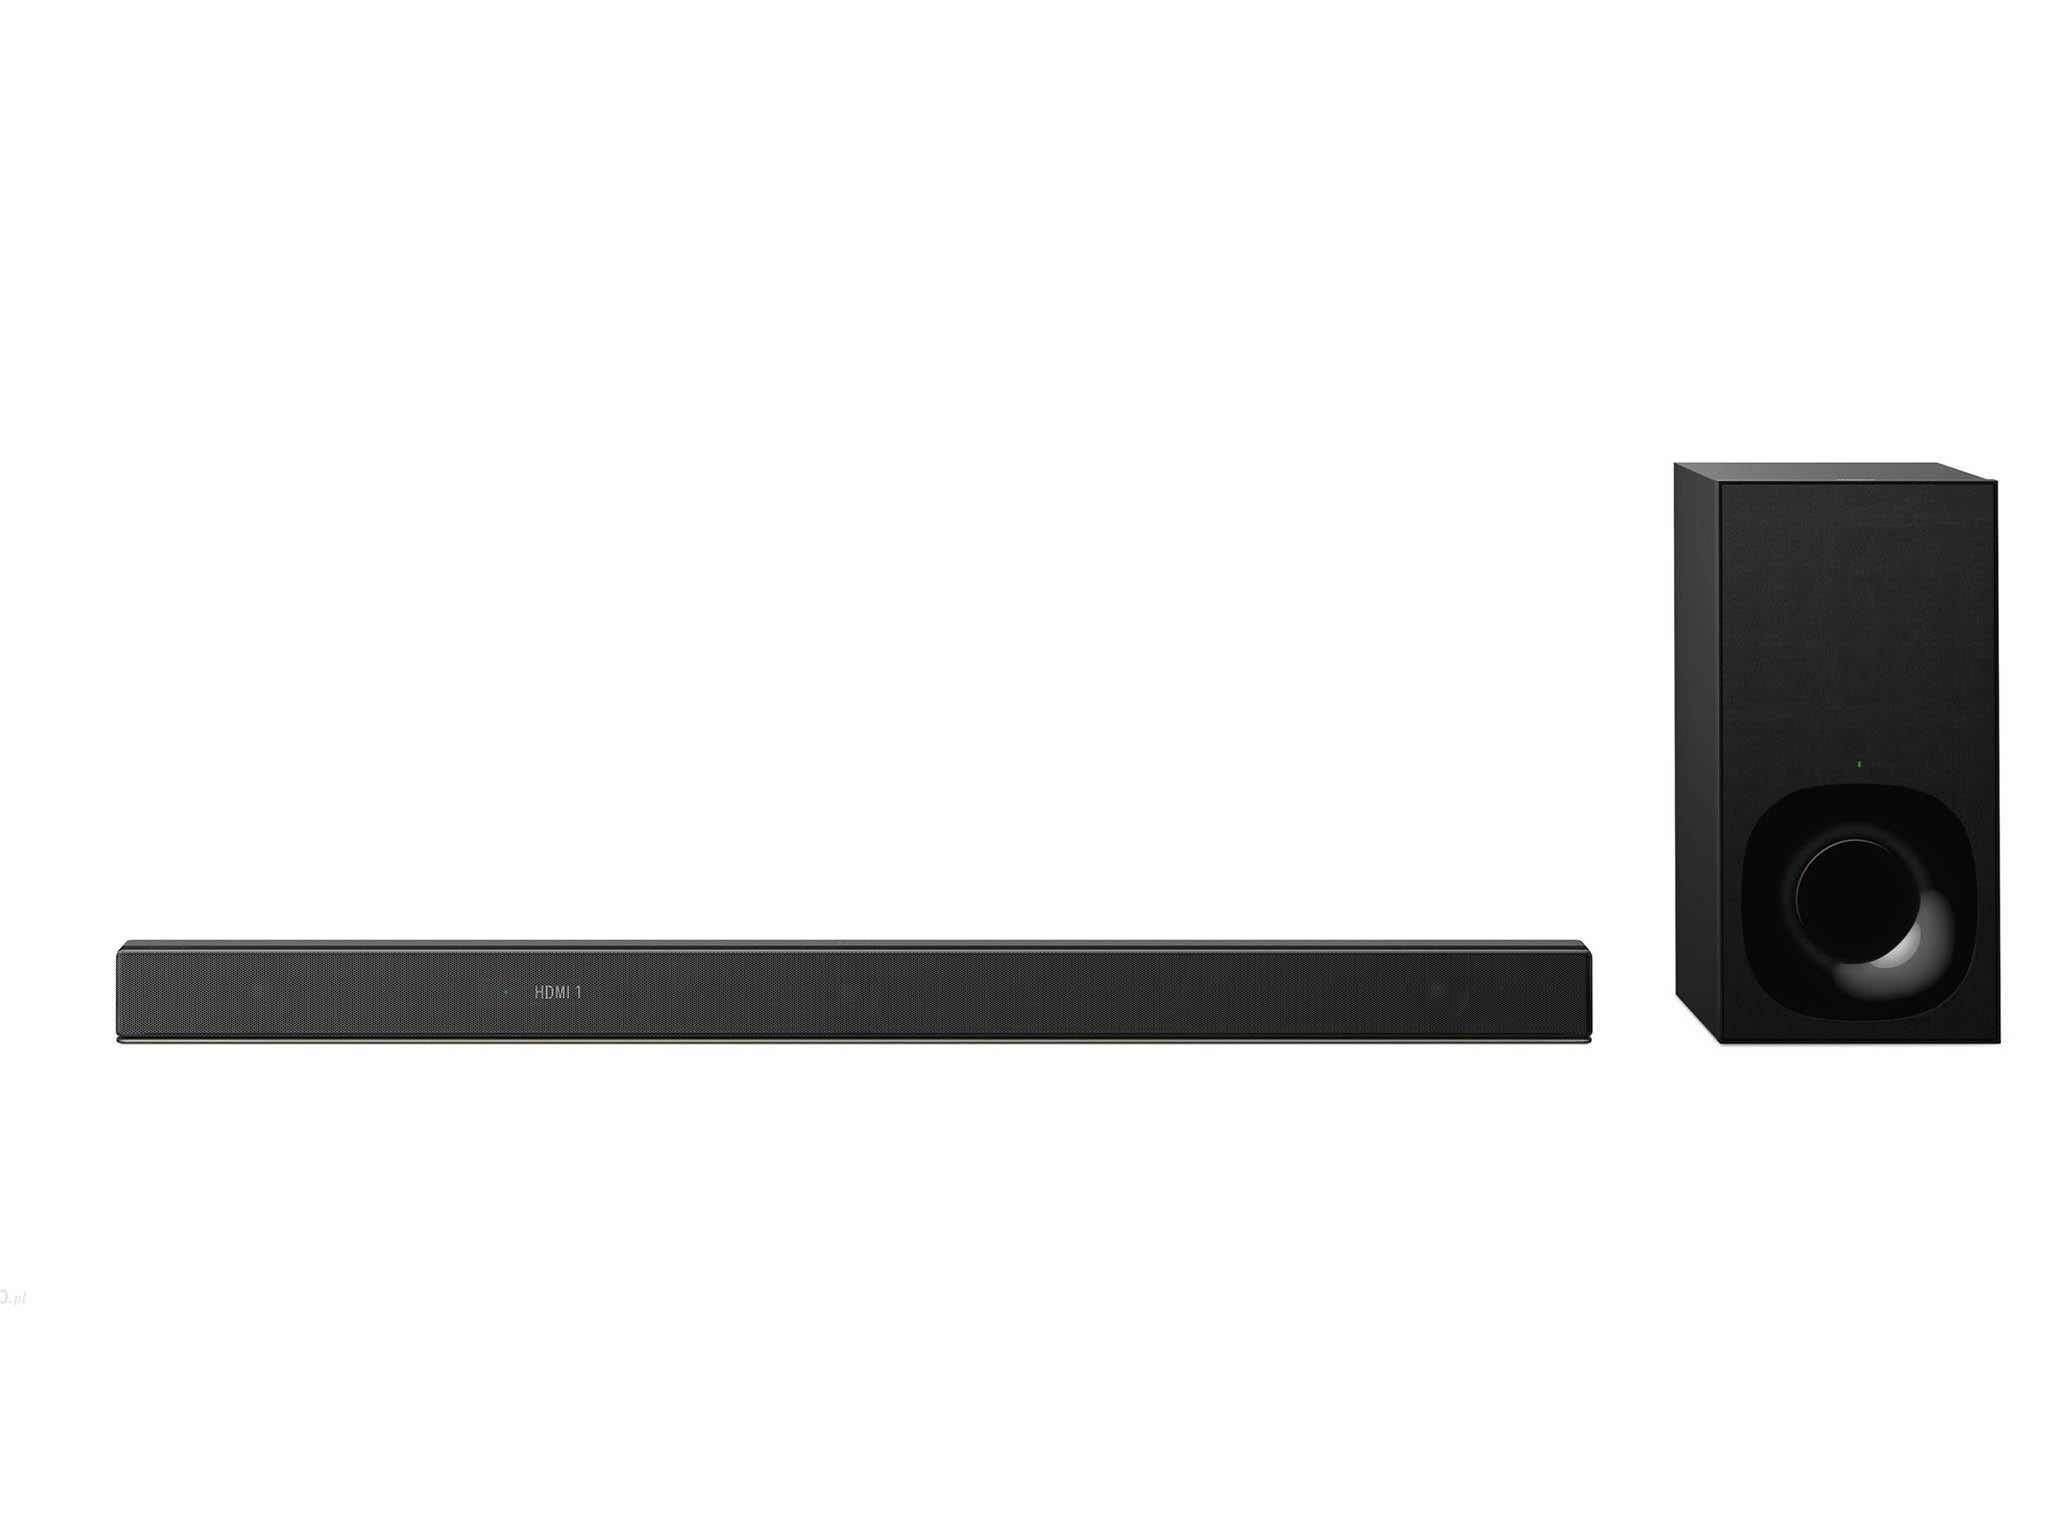 Best soundbars and soundbases to give your TV cinema quality